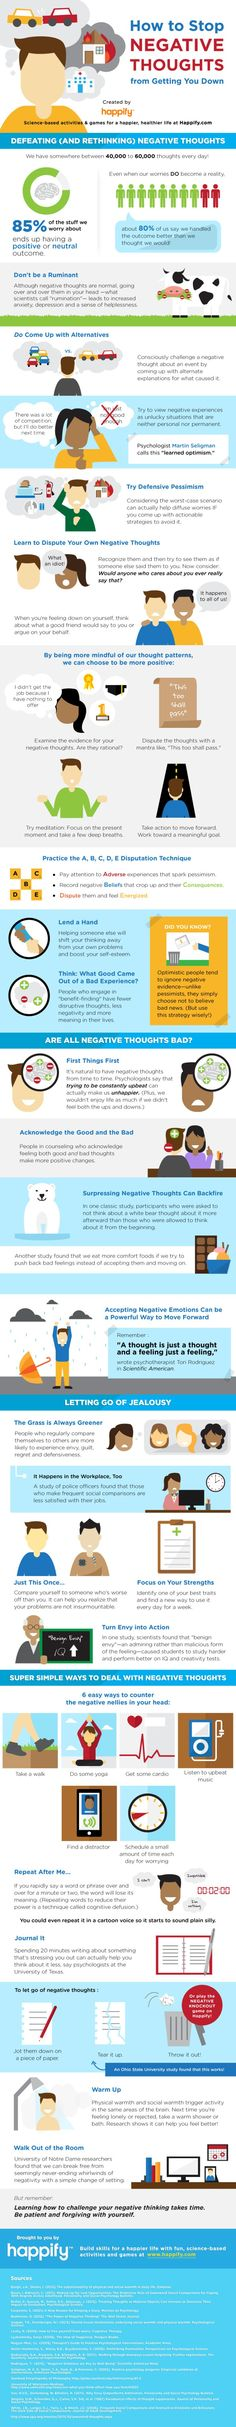 Here's How To Be More Happy & Less Negative  Happiness,  smiling, laughing, we all want more of it, but so many people these days are so stressed and full of worry and negativity. Study this awesome infographic and change your attitude and thinking today. Your mind is a powerful thing, it can create and inspire or destroy and debilitate. It all in our heads and we have the power to choose our thoughts, actions and reactions. So please choose wisely.